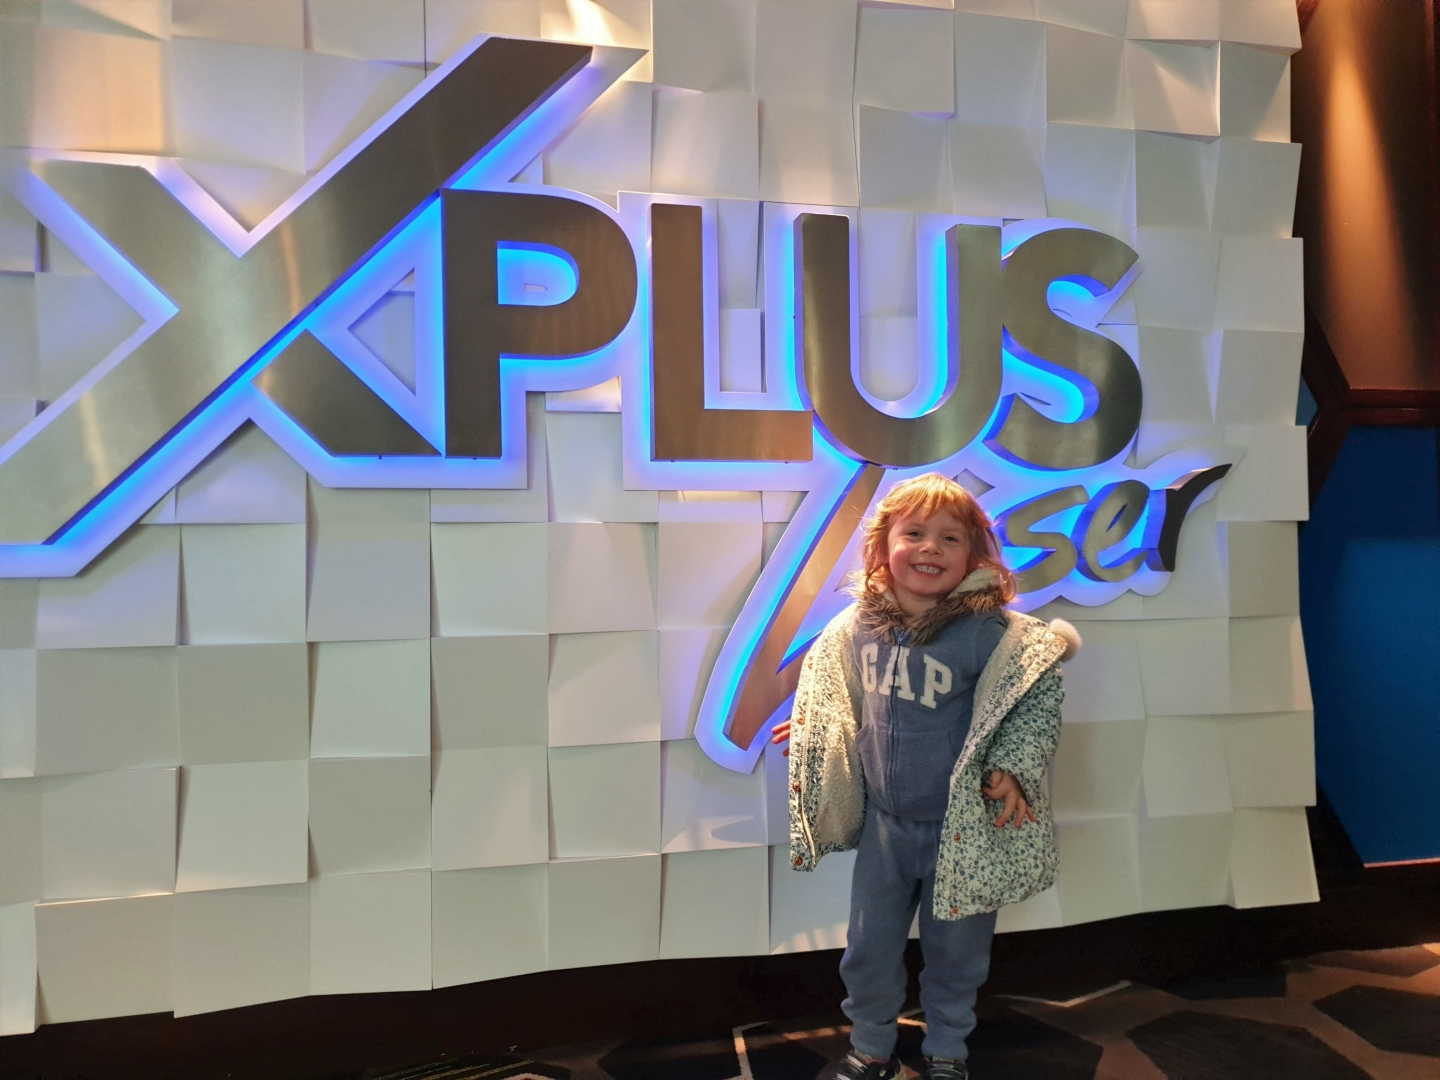 X Plus Laser Showcase de lux cinema Bluewater